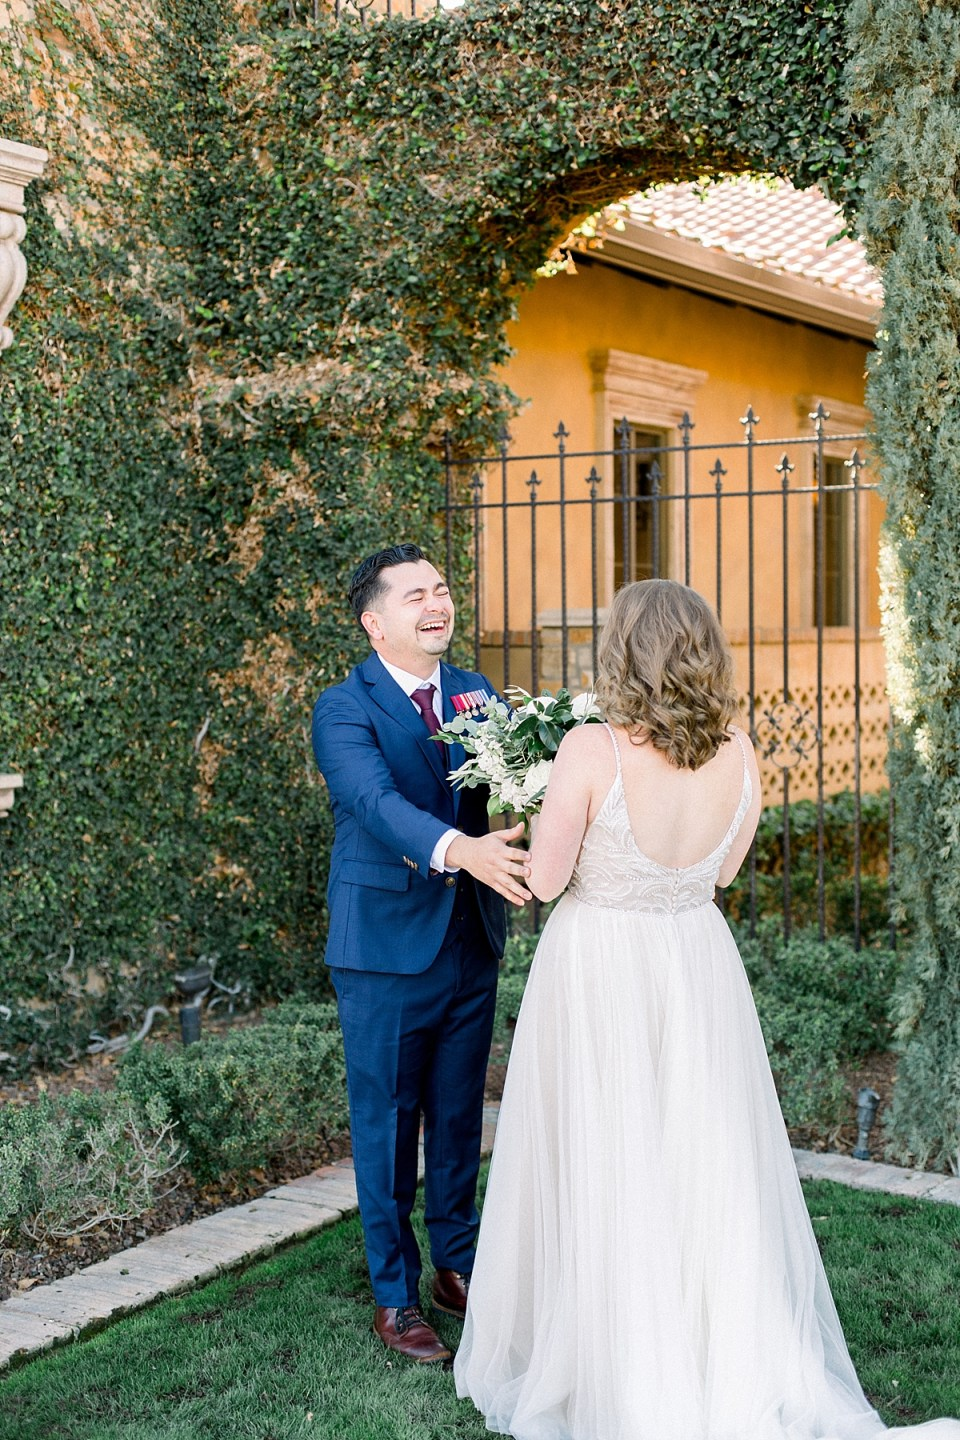 Villa Siena Wedding, Villa Siena Gilbert, Arizona Blush Wedding, Villa Siena Wedding Photographer, Phoenix Wedding Photographer, AZWED